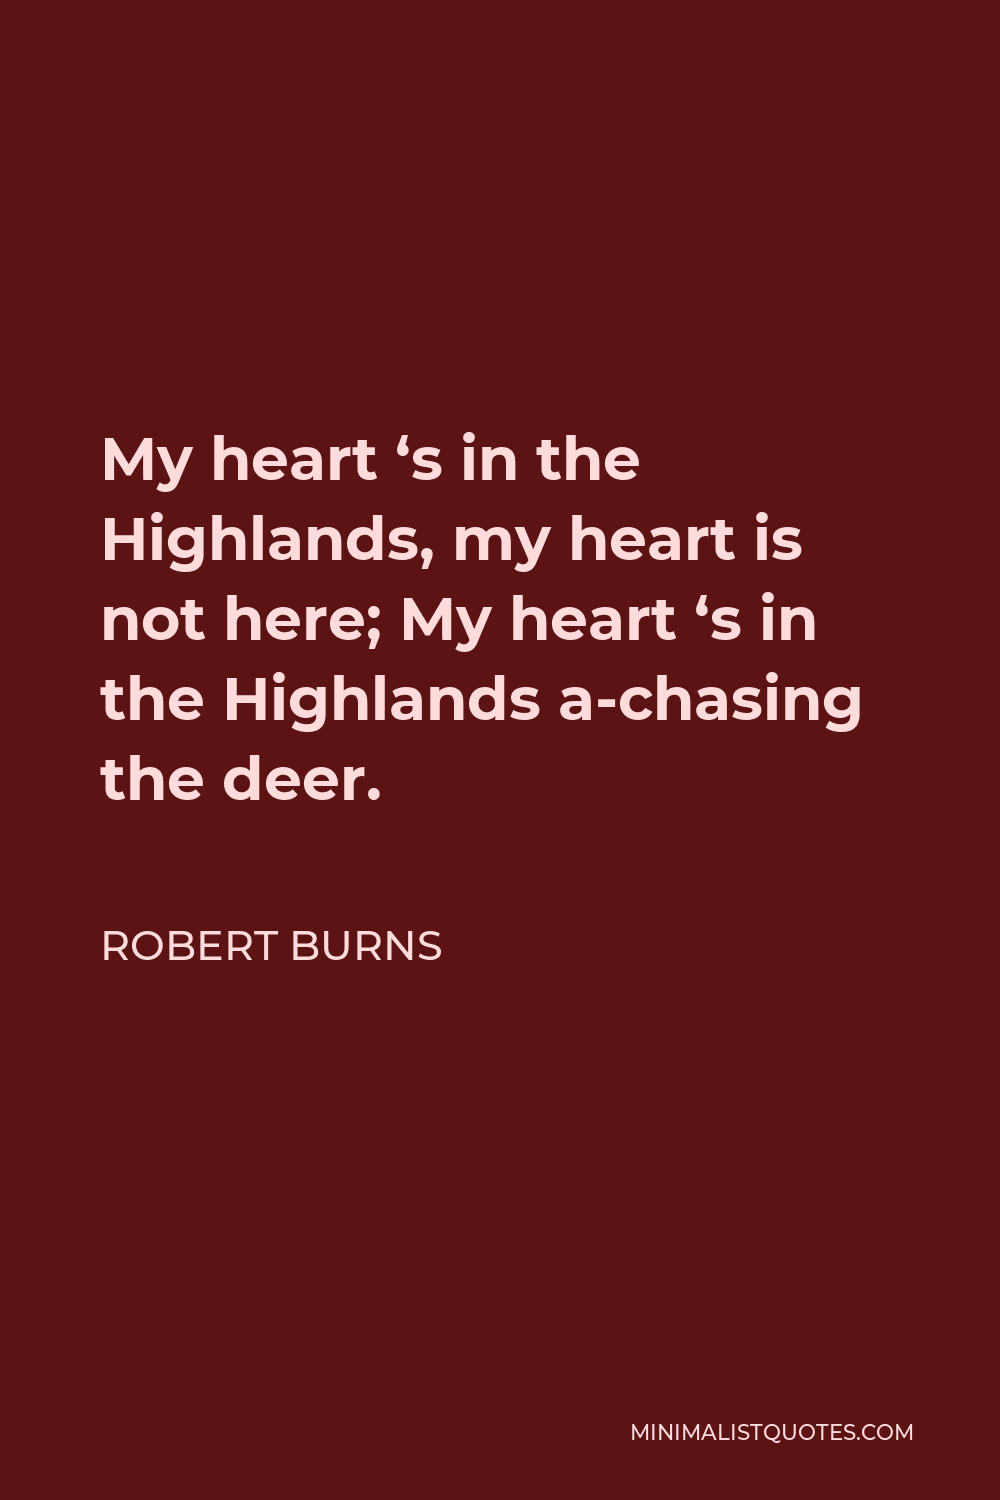 Robert Burns Quote - My heart 's in the Highlands, my heart is not here; My heart 's in the Highlands a-chasing the deer.